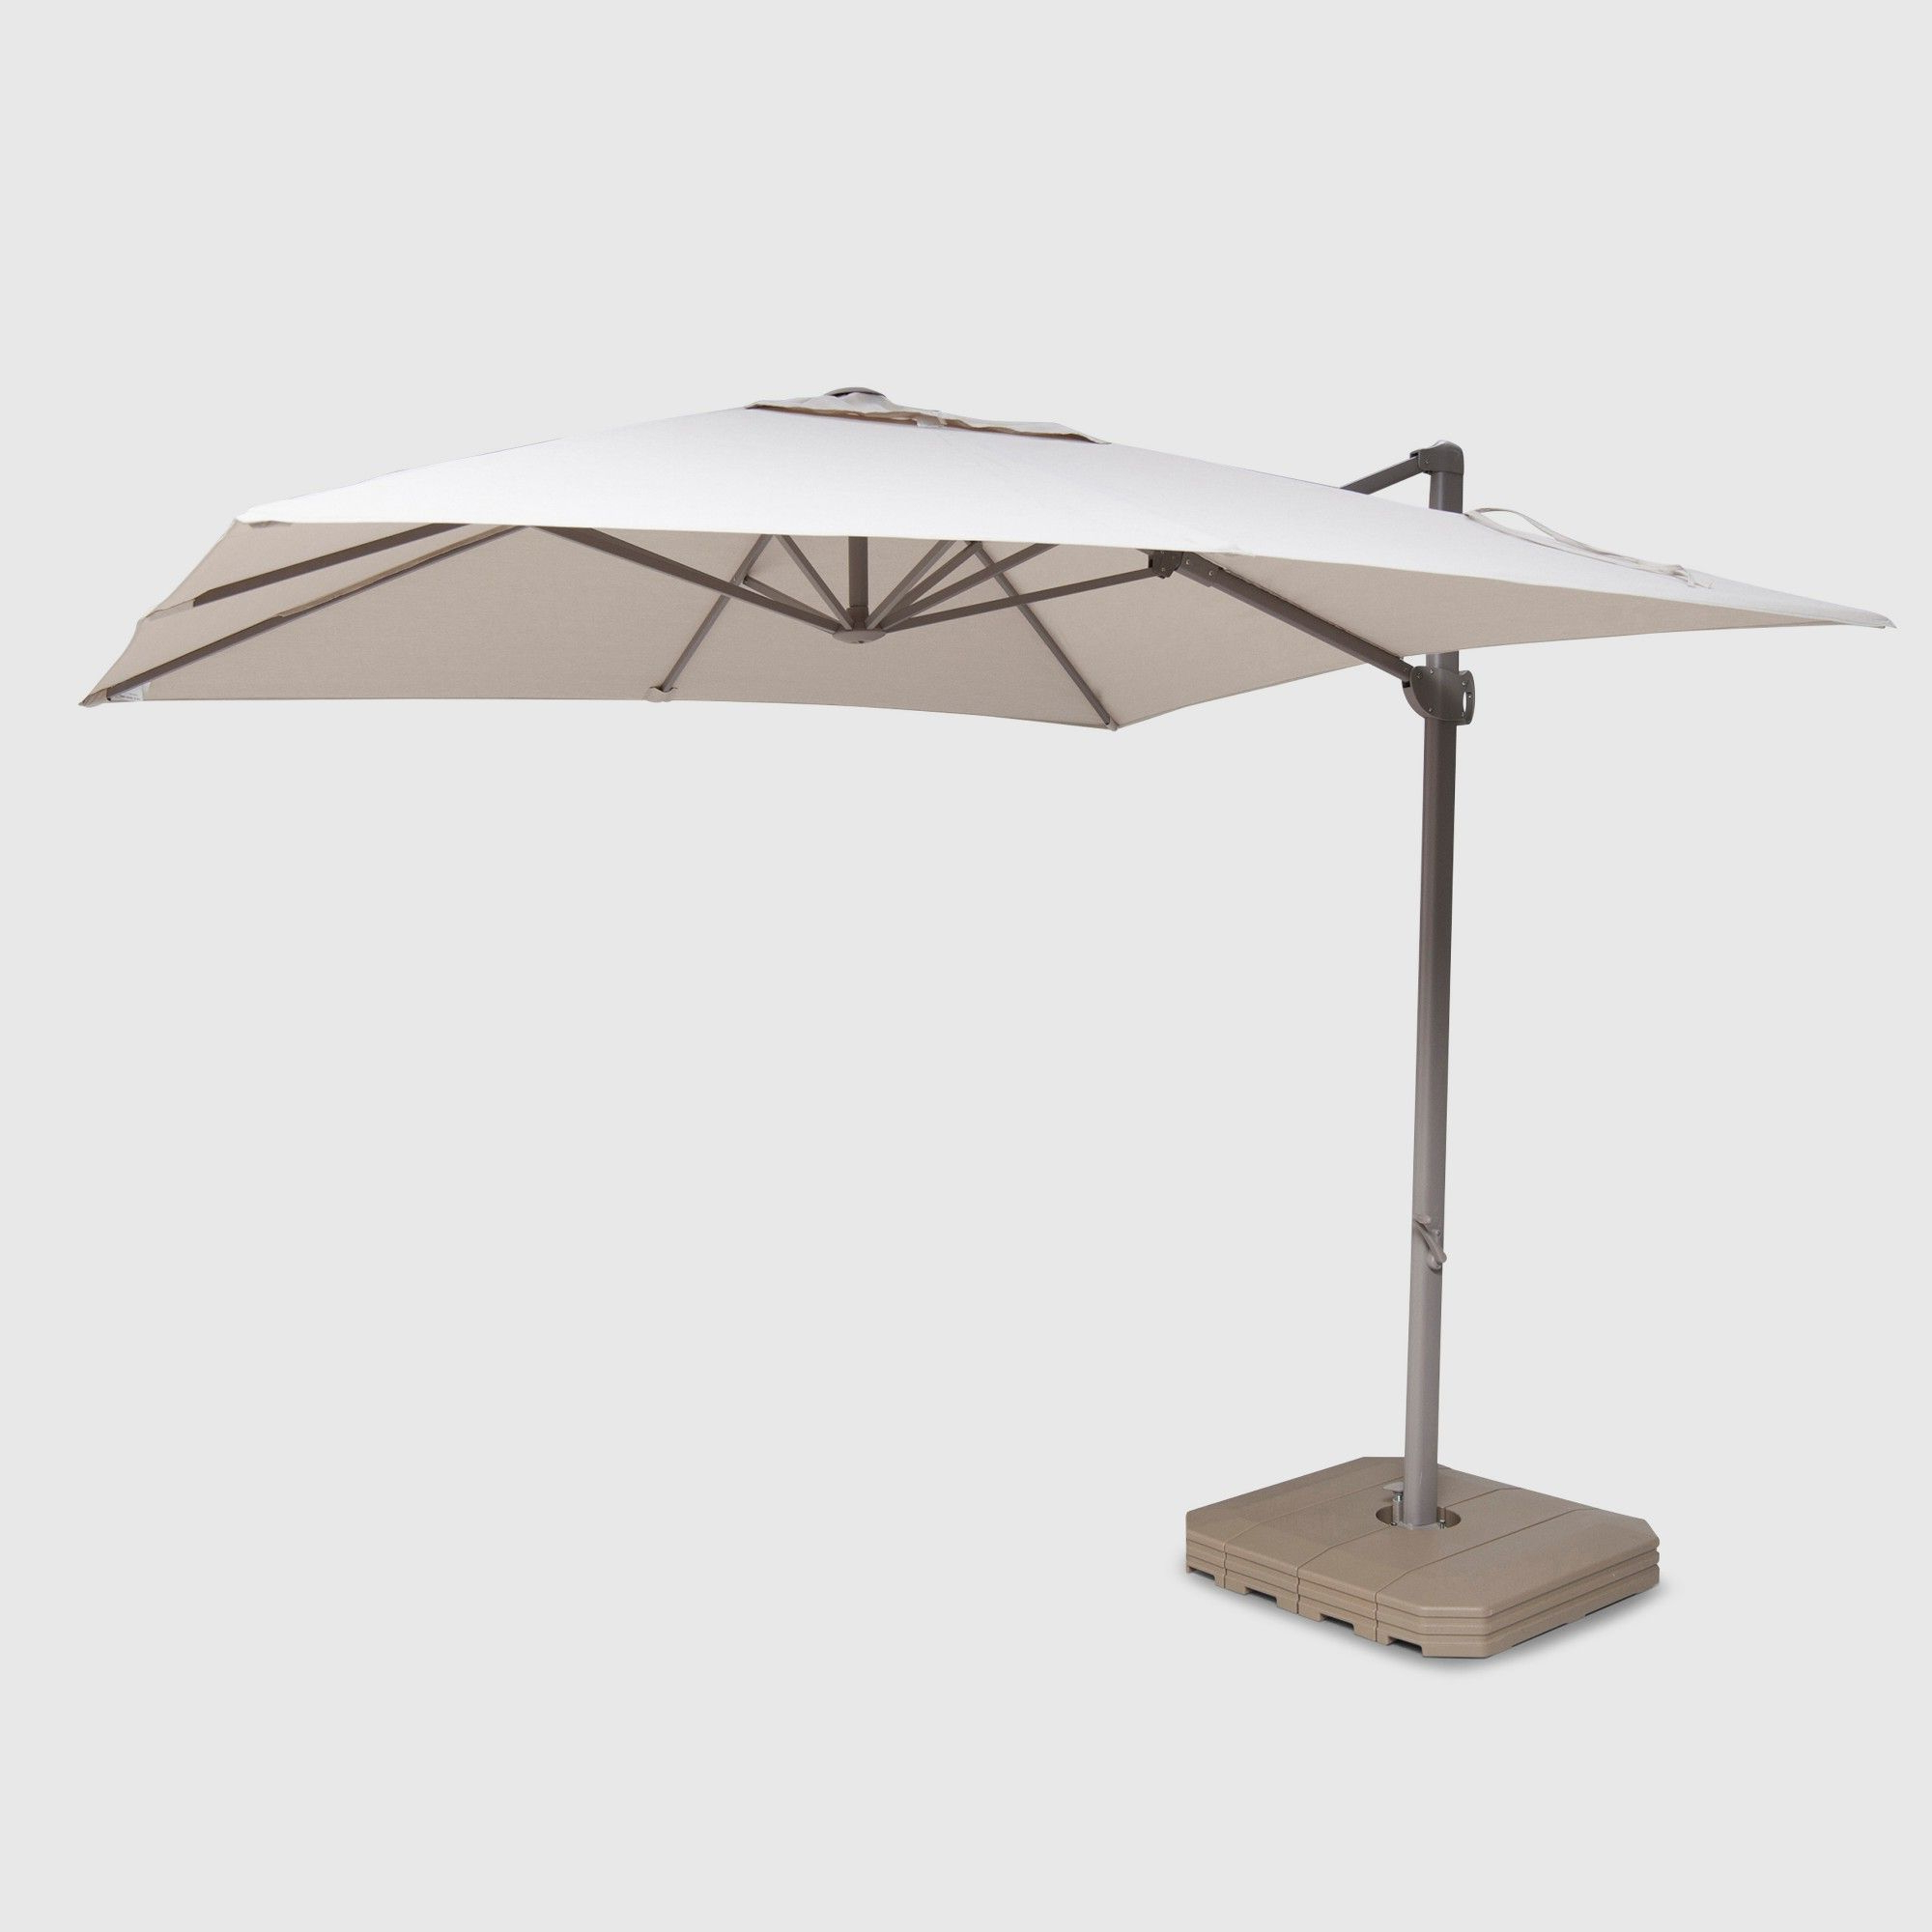 Fashionable 10' Square Offset Patio Umbrella Glacier – Ash Pole – Project 62 In Intended For Fazeley  Rectangular Cantilever Umbrellas (View 8 of 20)